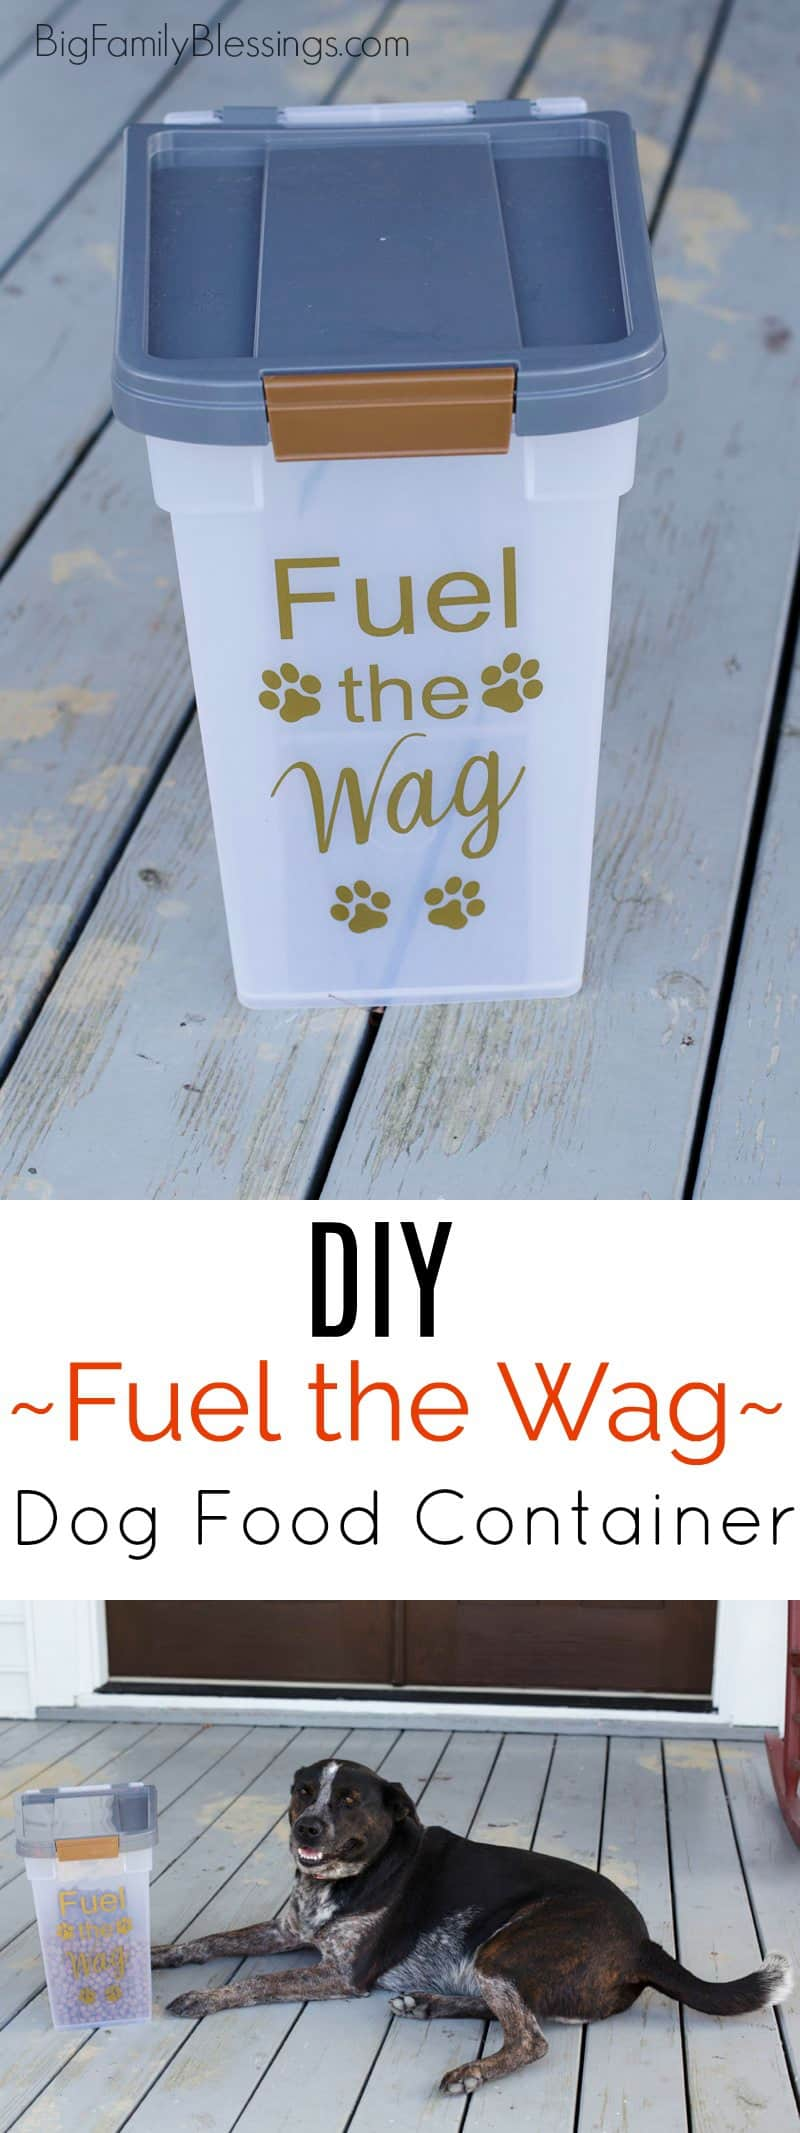 DIY Fuel the Wag Dog Food Container